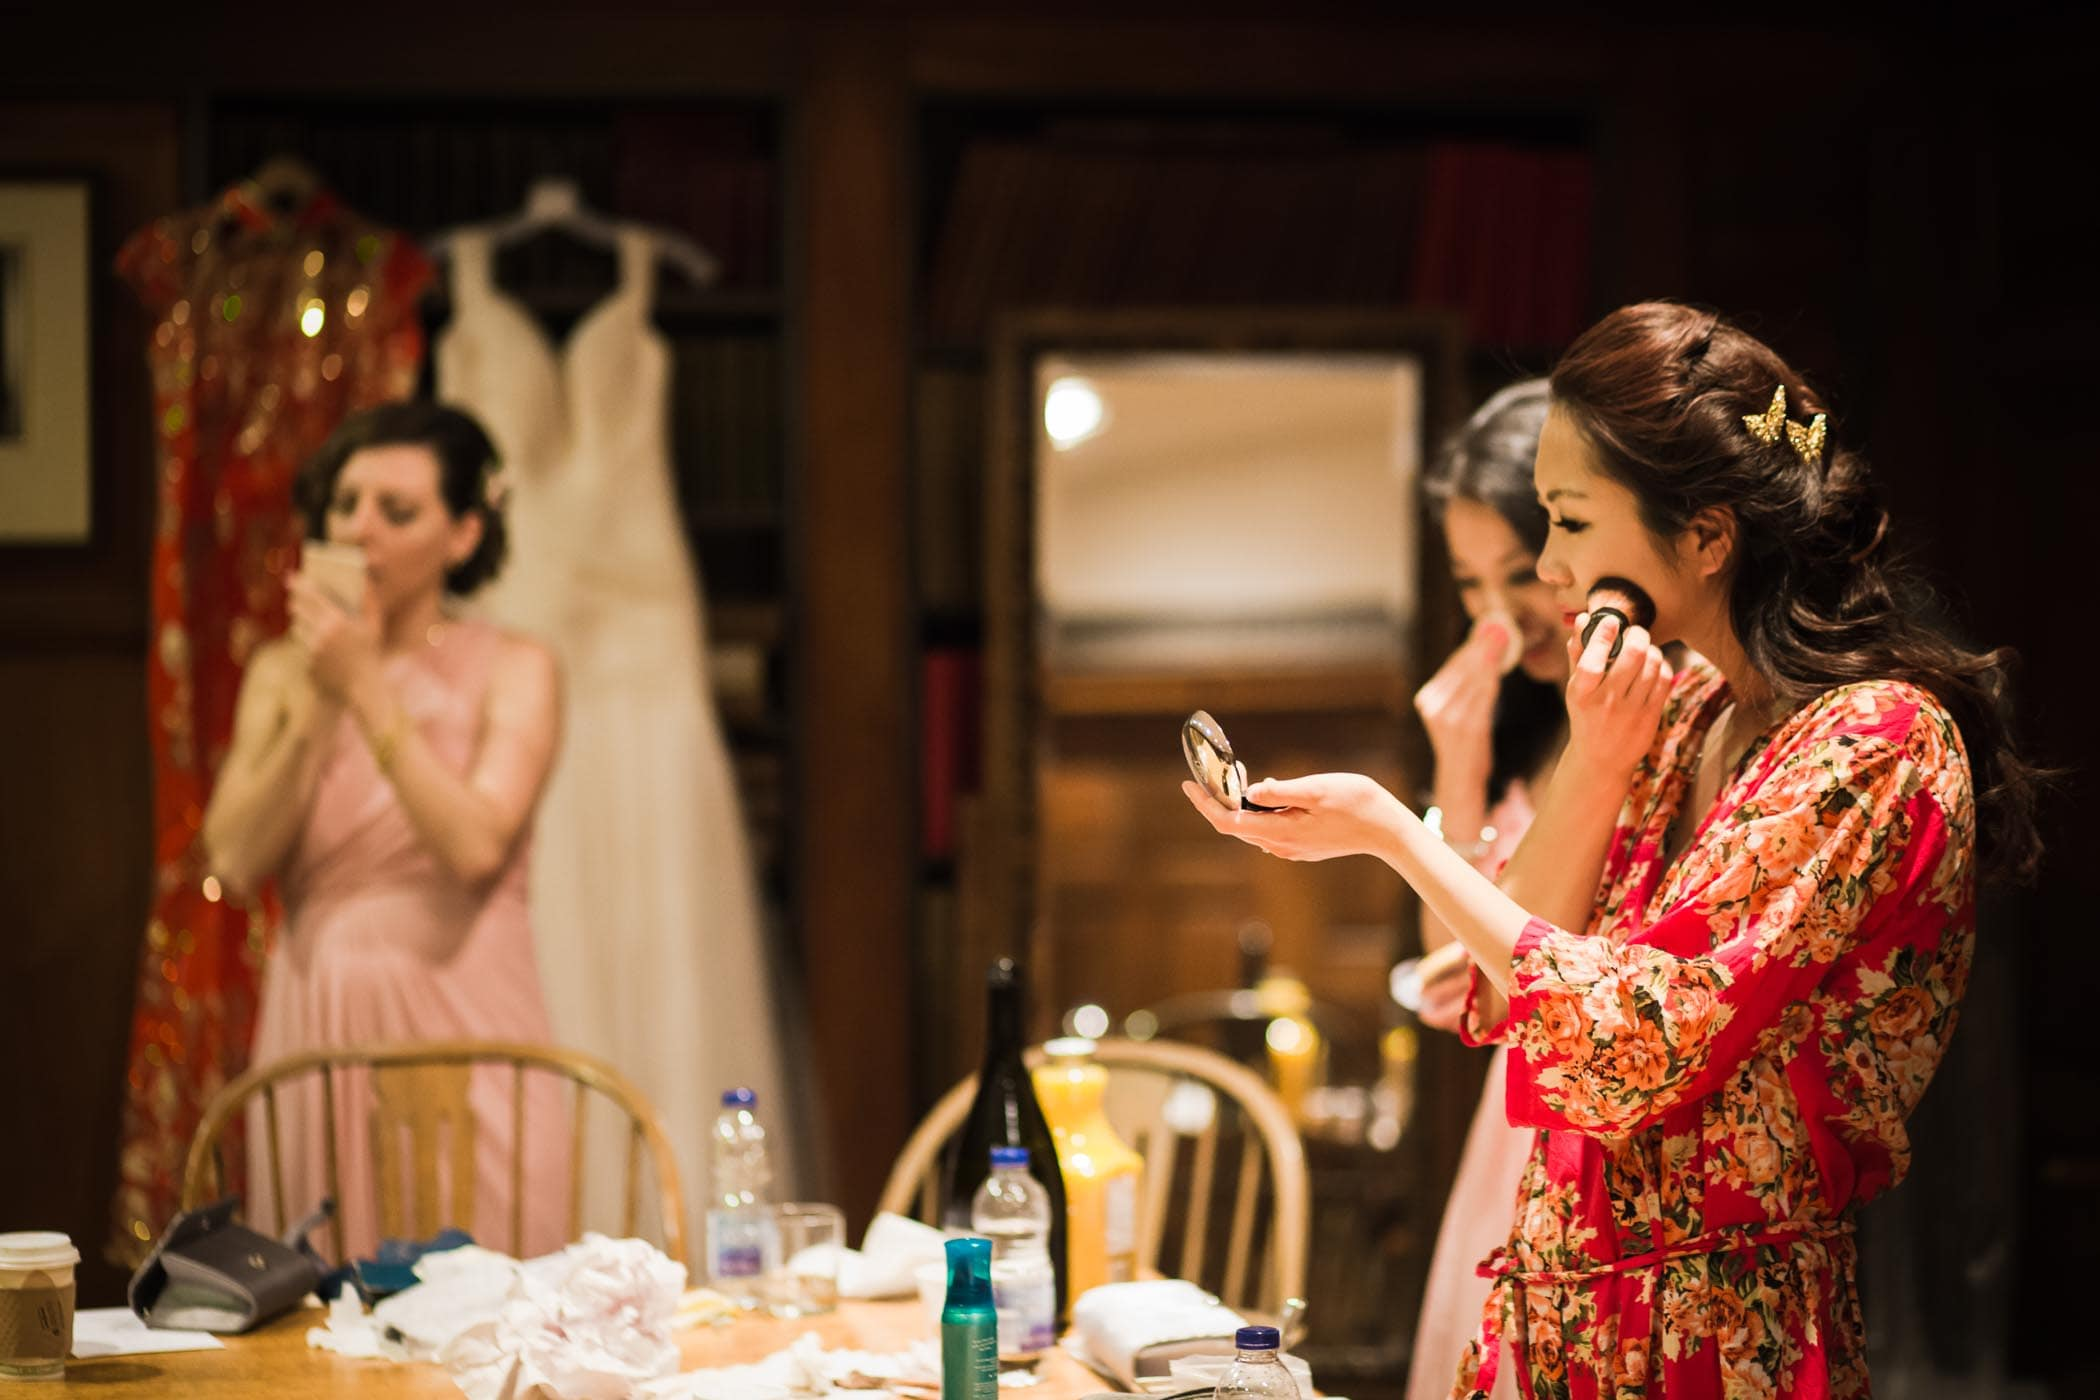 The bride dressed in a red robe doing makeup with bridesmaids before dinner in this Hart House wedding.